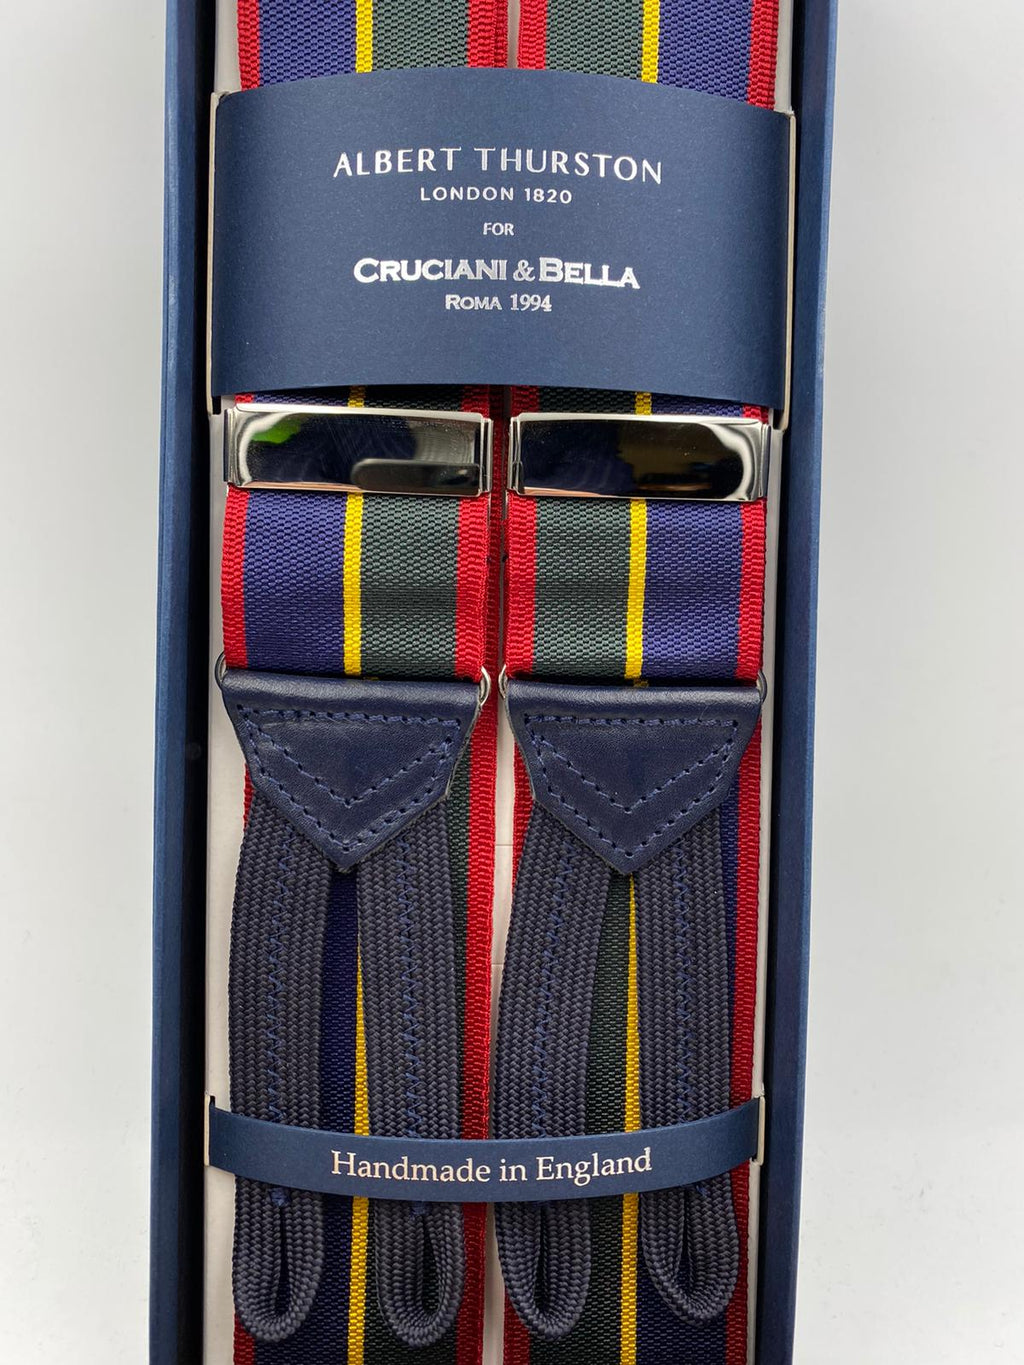 Albert Thurston for Cruciani & Bella Made in England Adjustable Sizing 40 mm Woven Barathea  Blue, Green, red and Yellow Stripes Braces Braid ends Y-Shaped Nickel Fittings Size: XL #4998